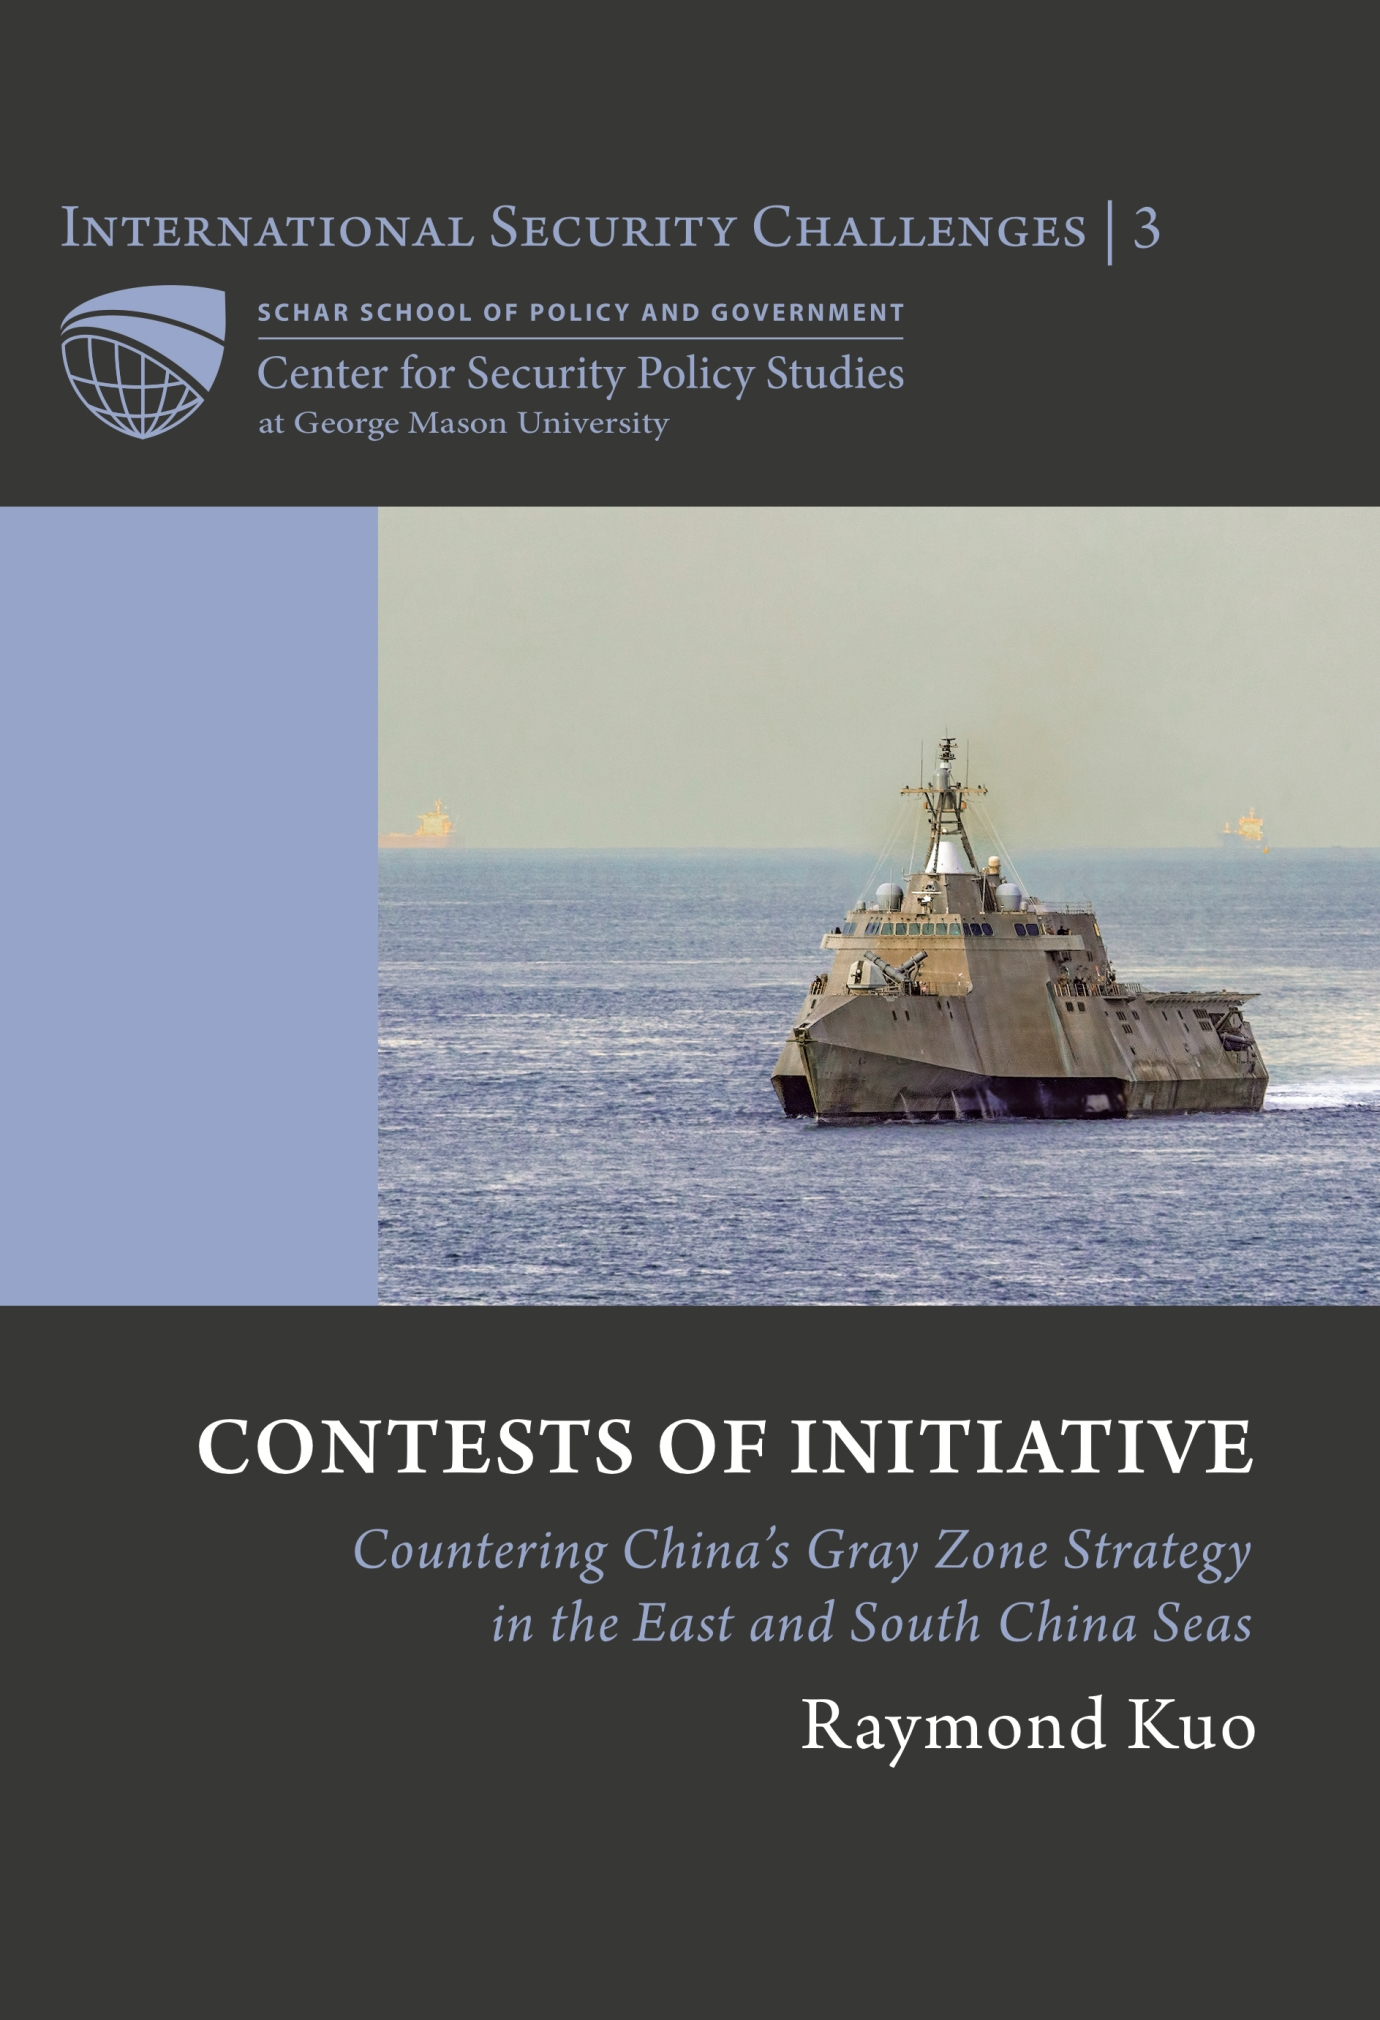 This is a book cover in gray, blue and white colors, with a large ship on the cover